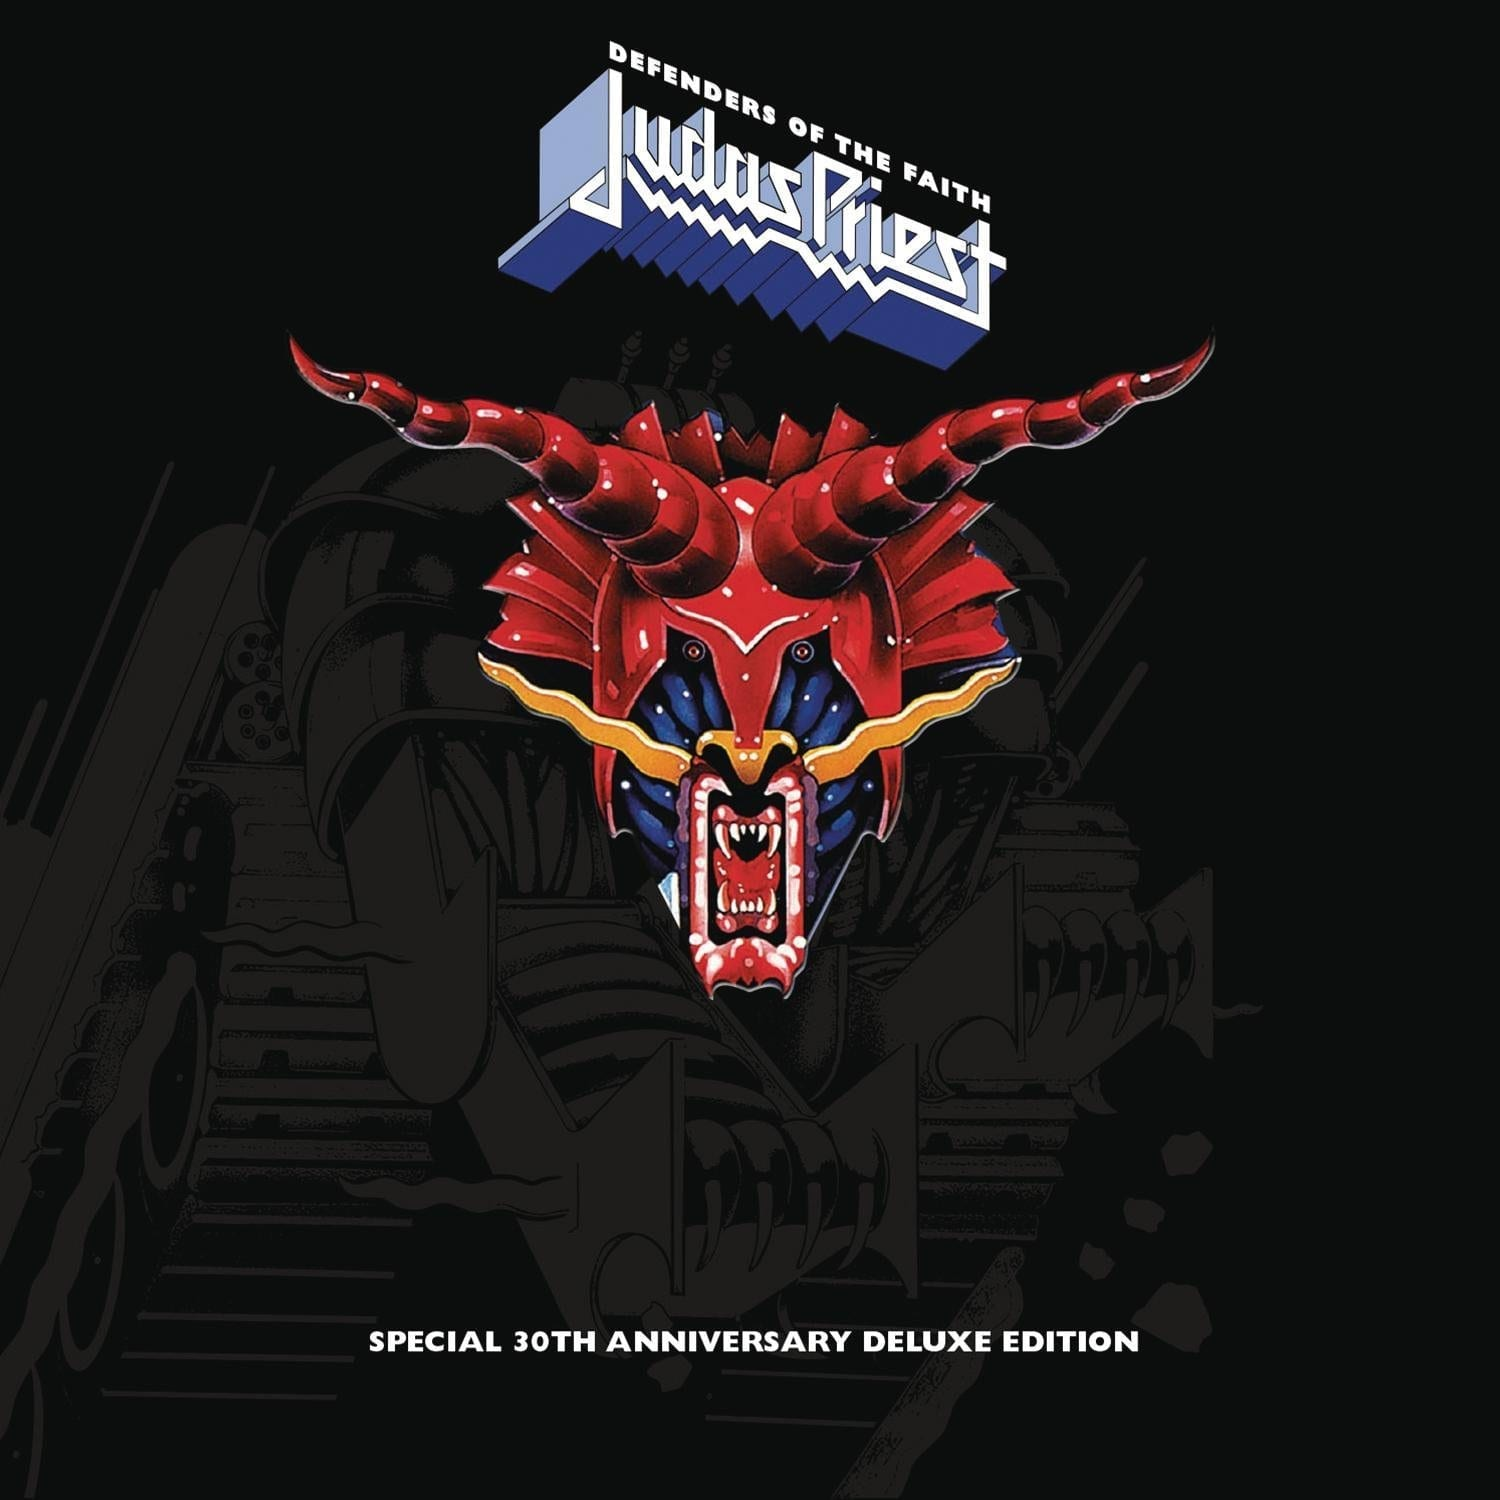 Cover: Judas Priest - Defenders of the faith 30th Anniversary Deluxe